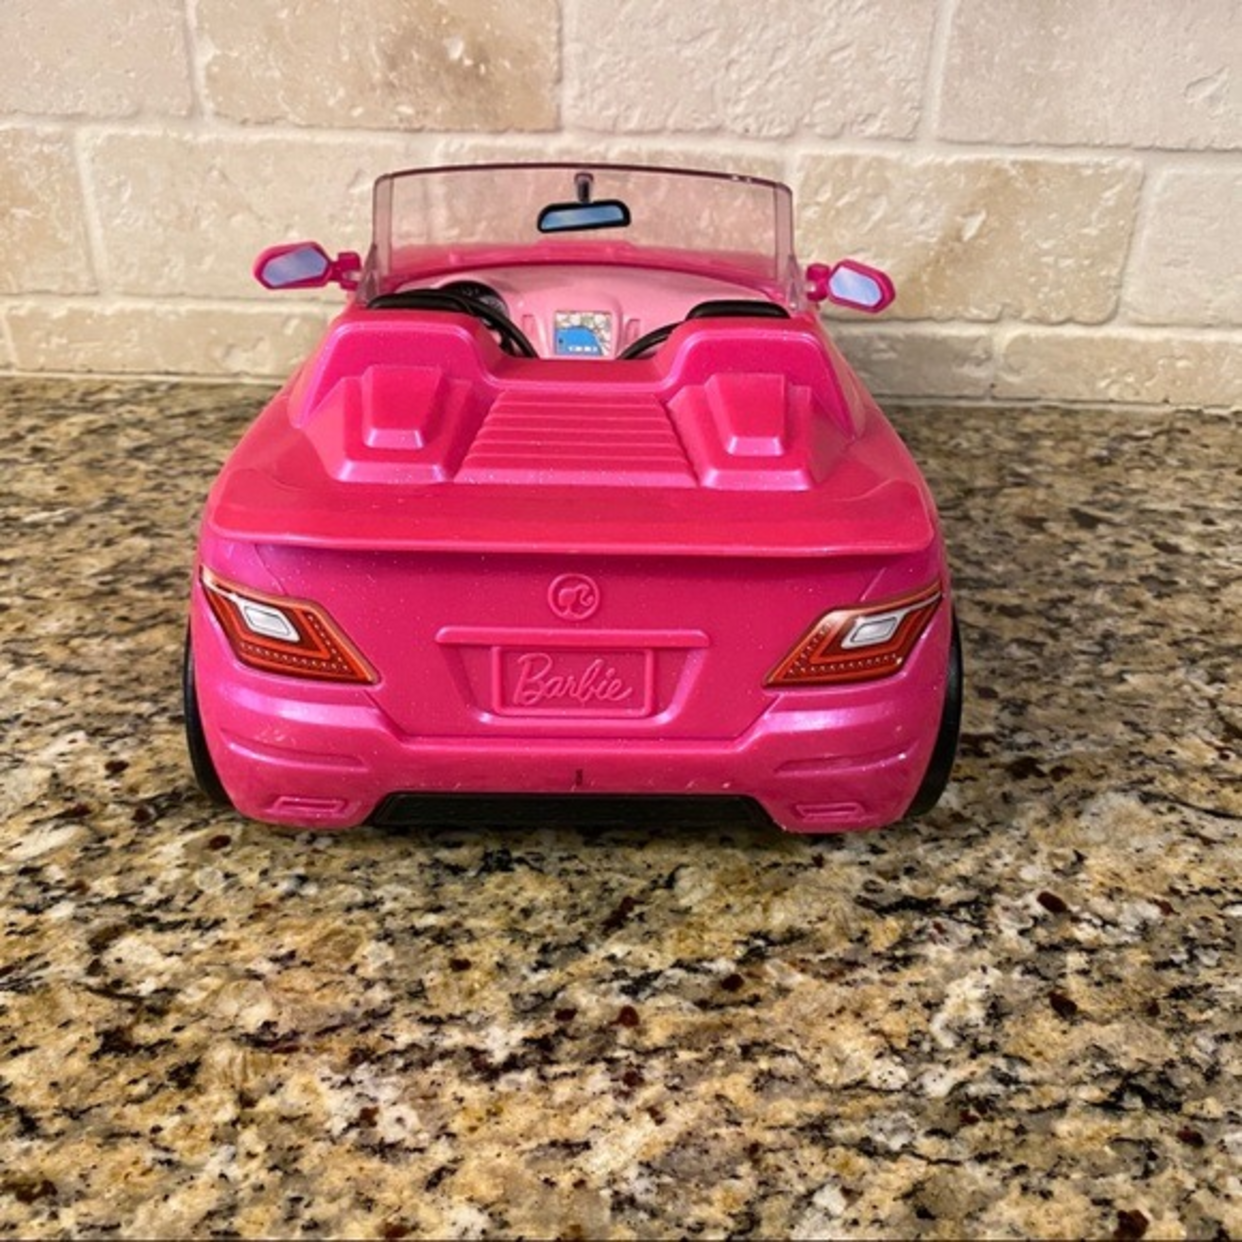 Barbie Pink Convertible Toy Car